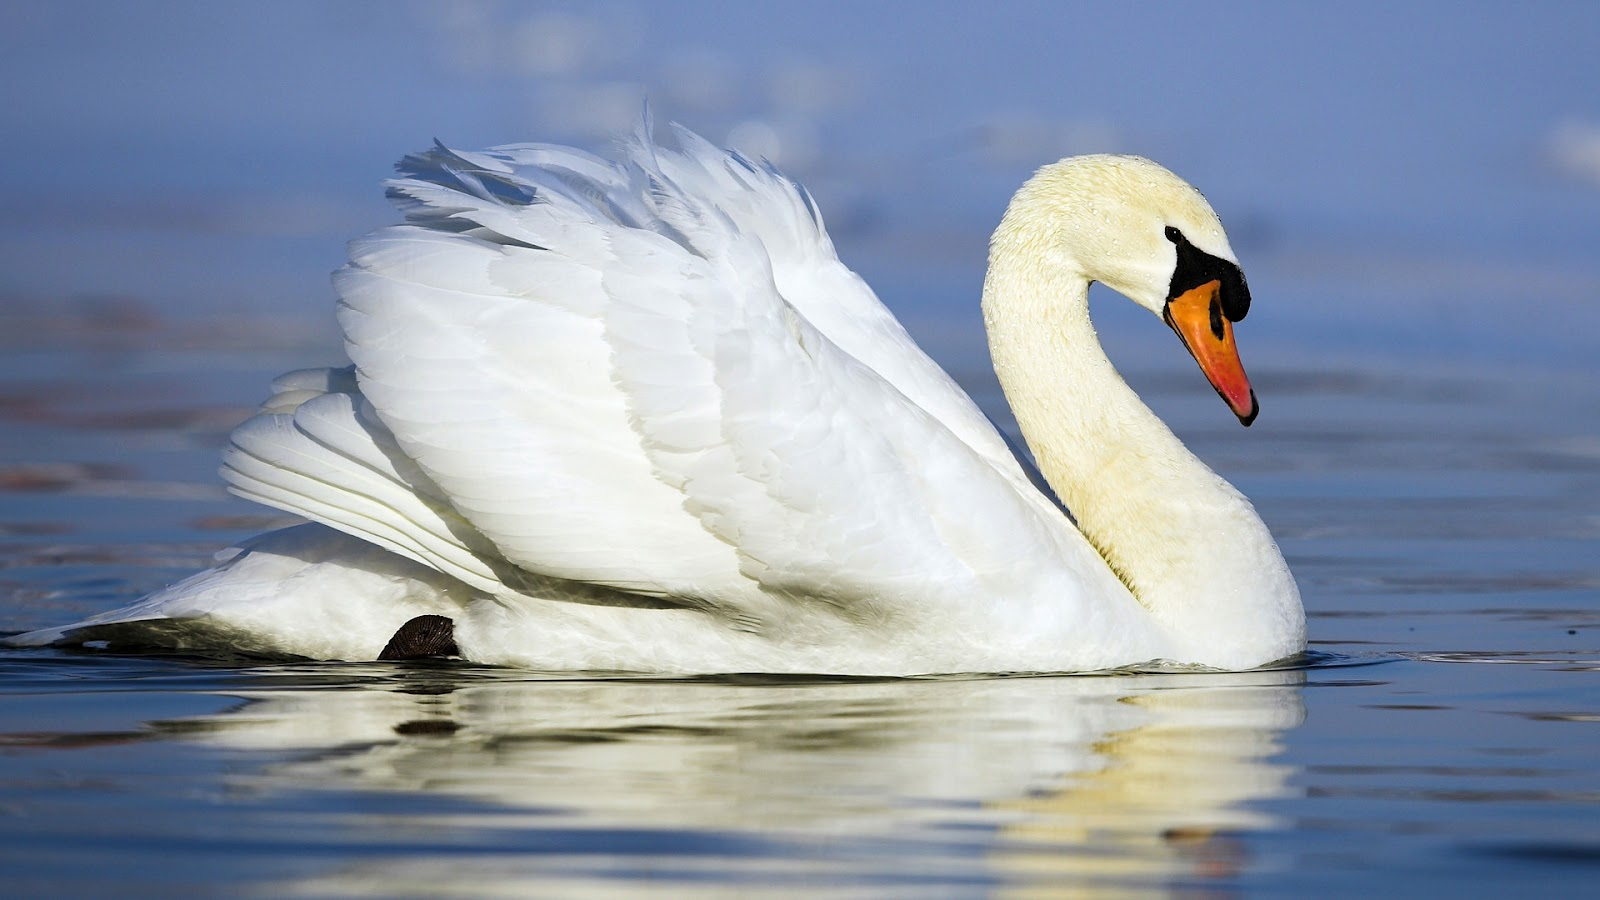 White Swans Wallpaper white swan swimming in the